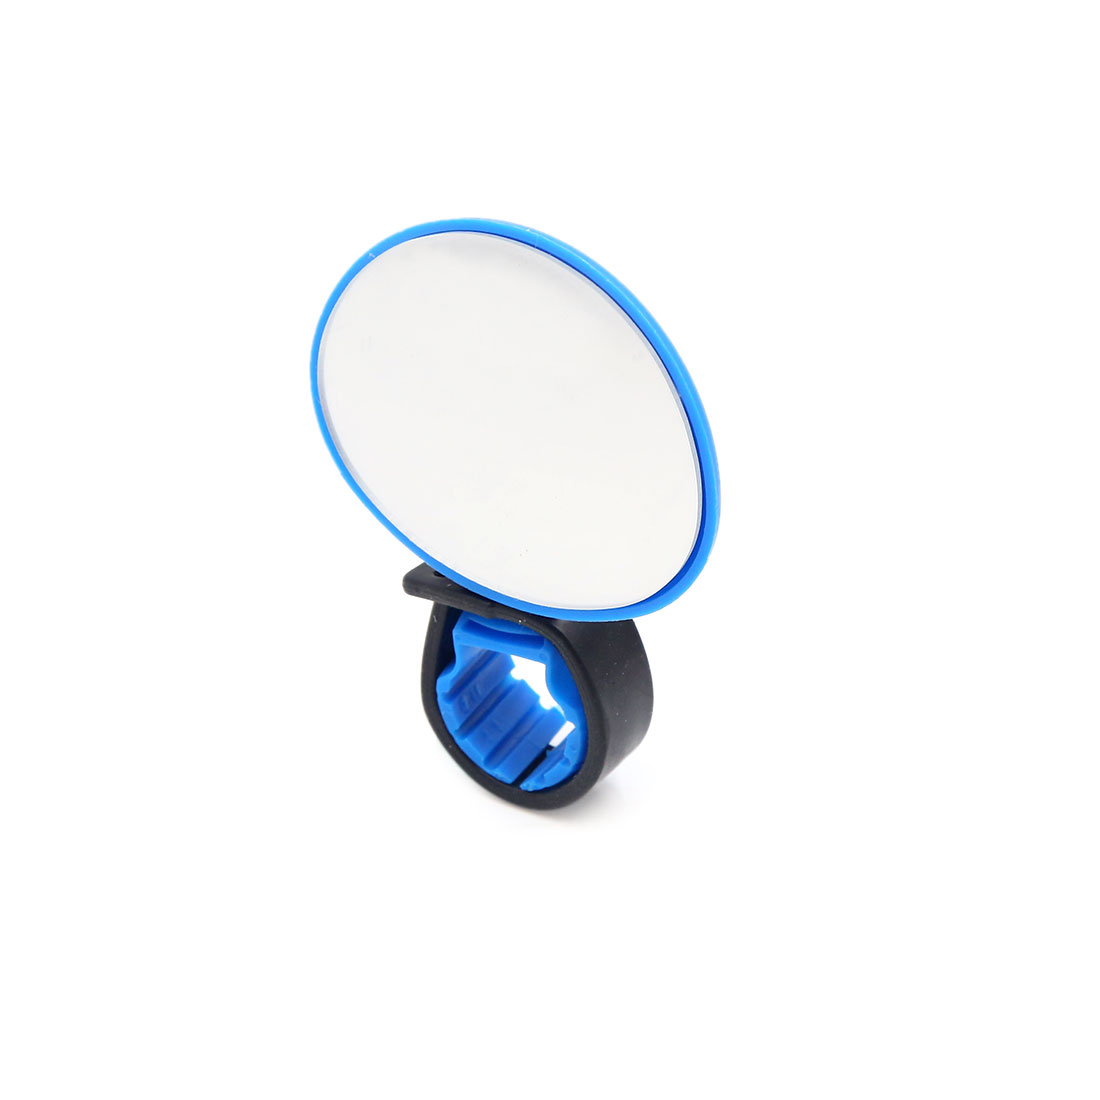 Mini Rotaty Handlebar Mount Convex Rearview Mirror Blue for Road Bike Bicycle